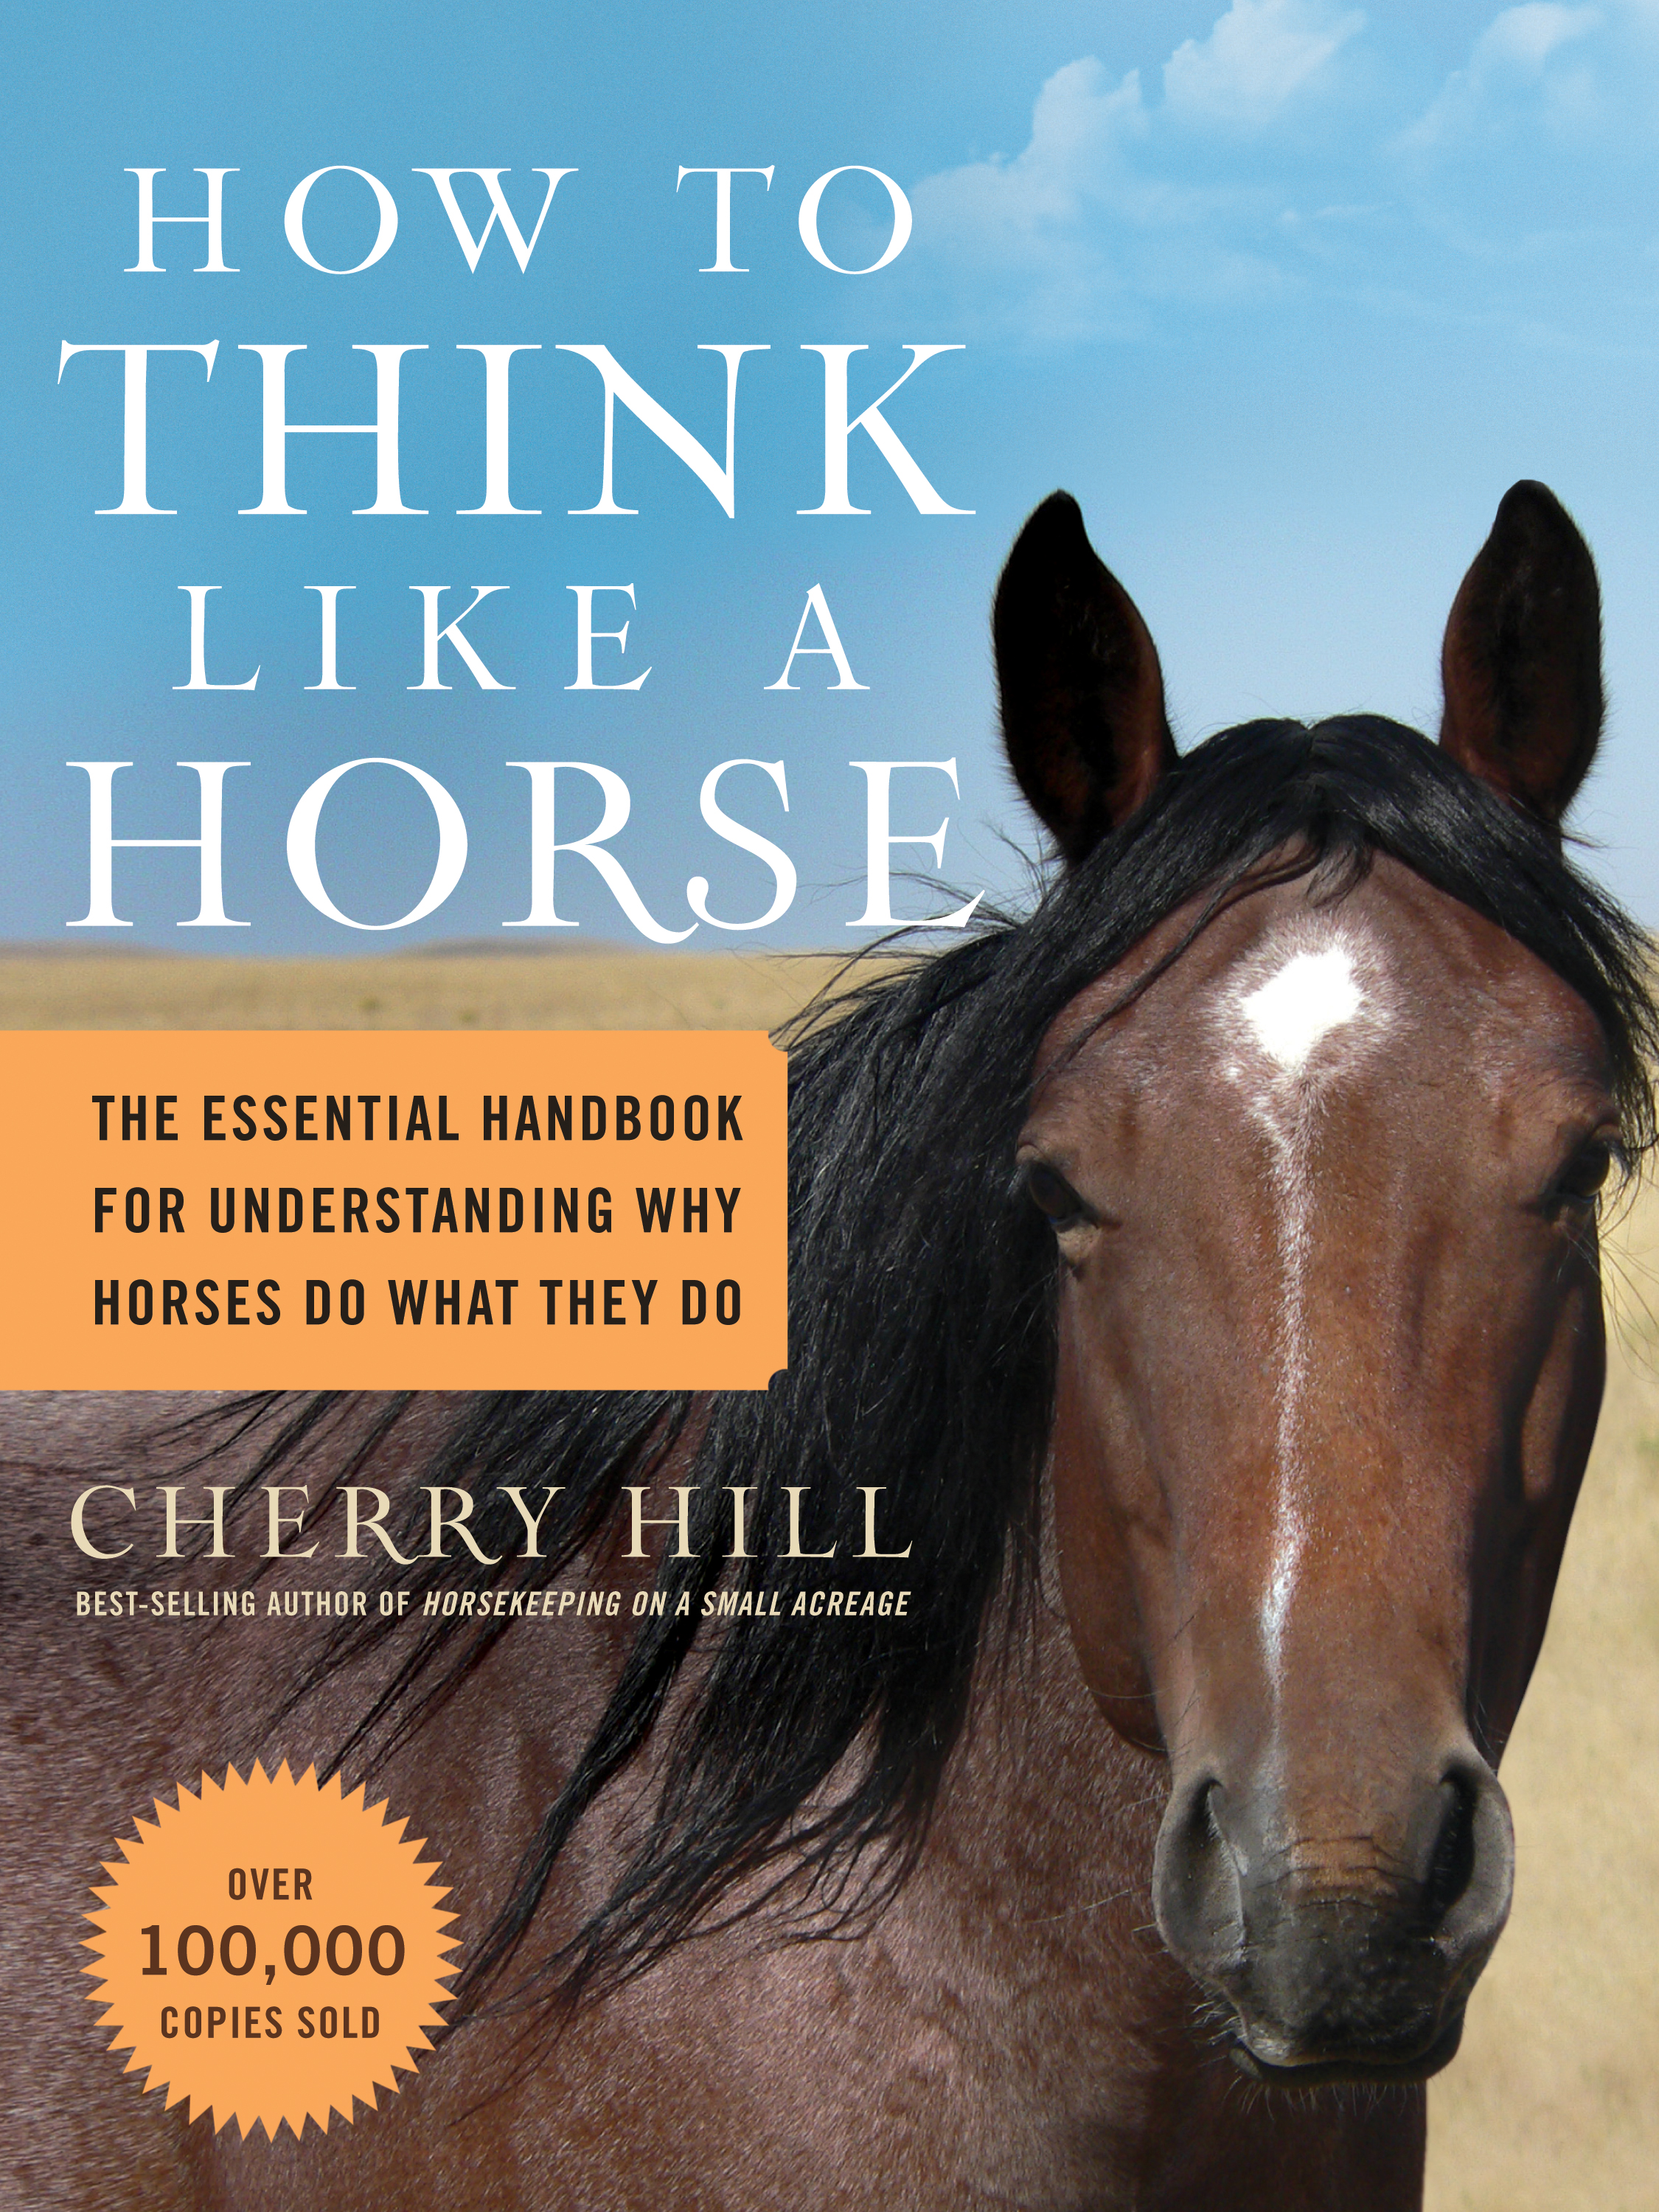 How to Think Like a Horse The Essential Handbook for Understanding Why Horses Do What They Do - Cherry Hill